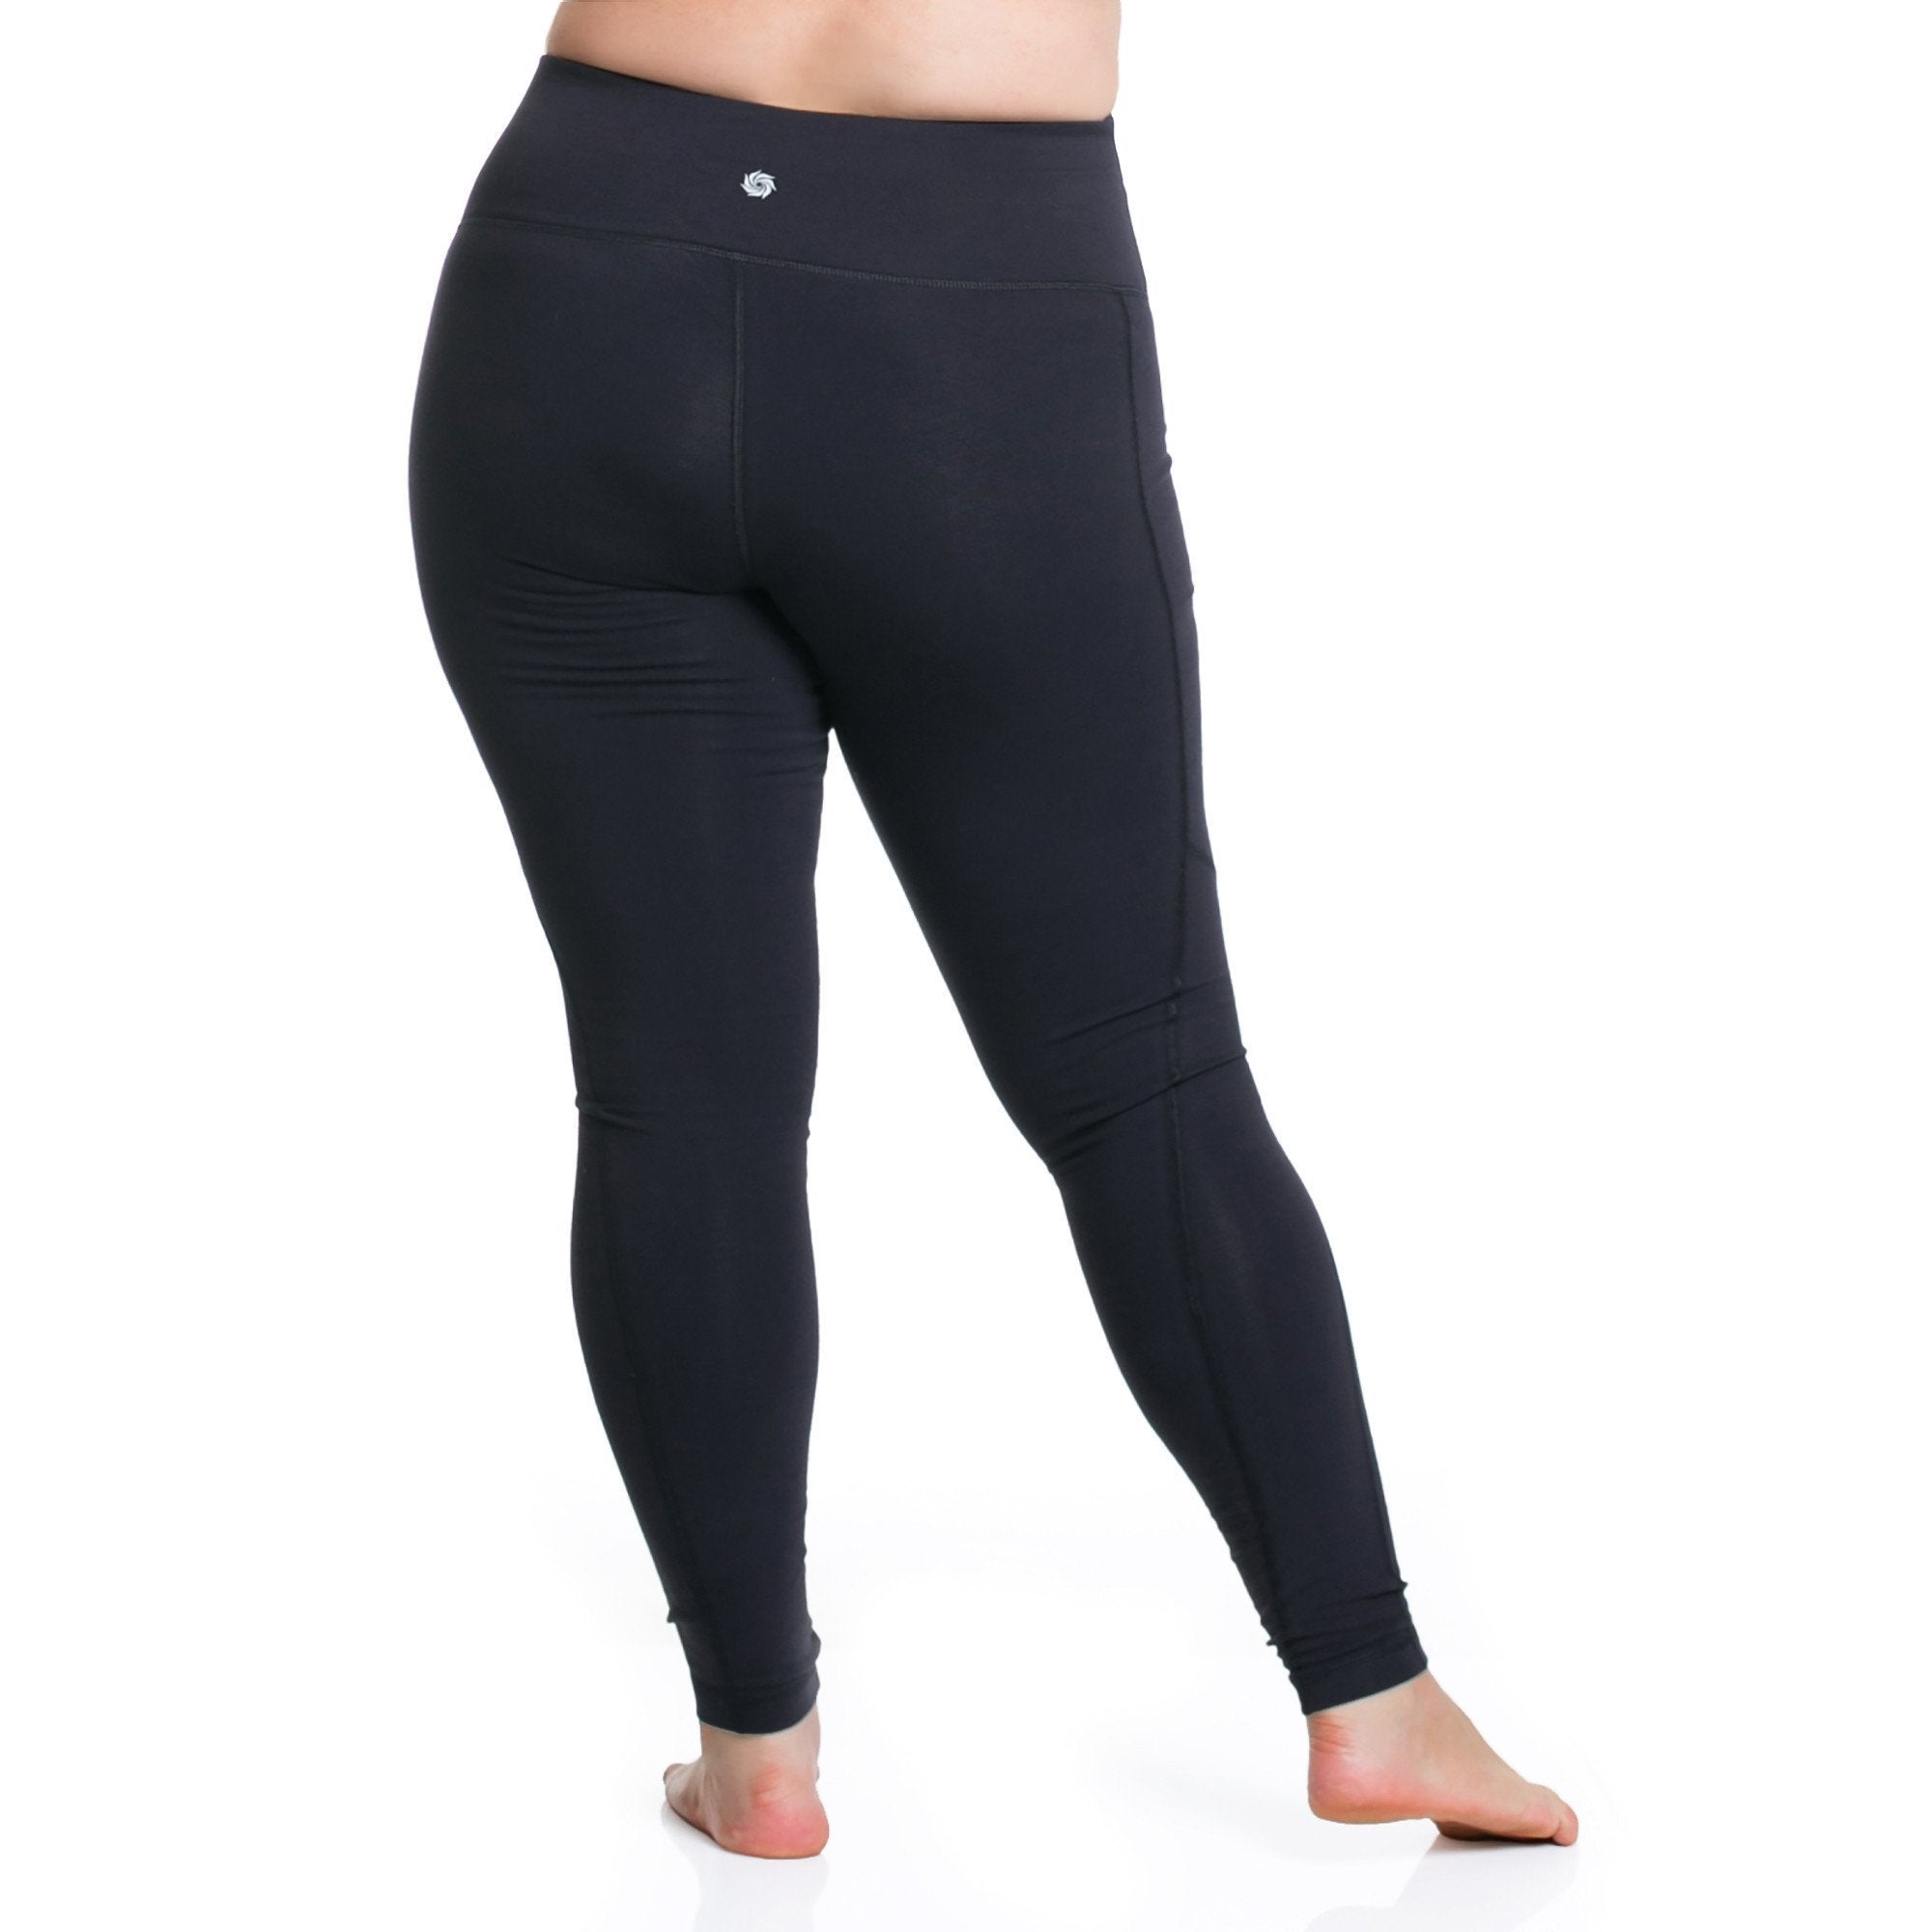 ea9bf3dbddaf5 ... workout Curve Basix Compression Legging - Rainbeau Curves, 14/16 /  Black, activewear, ...